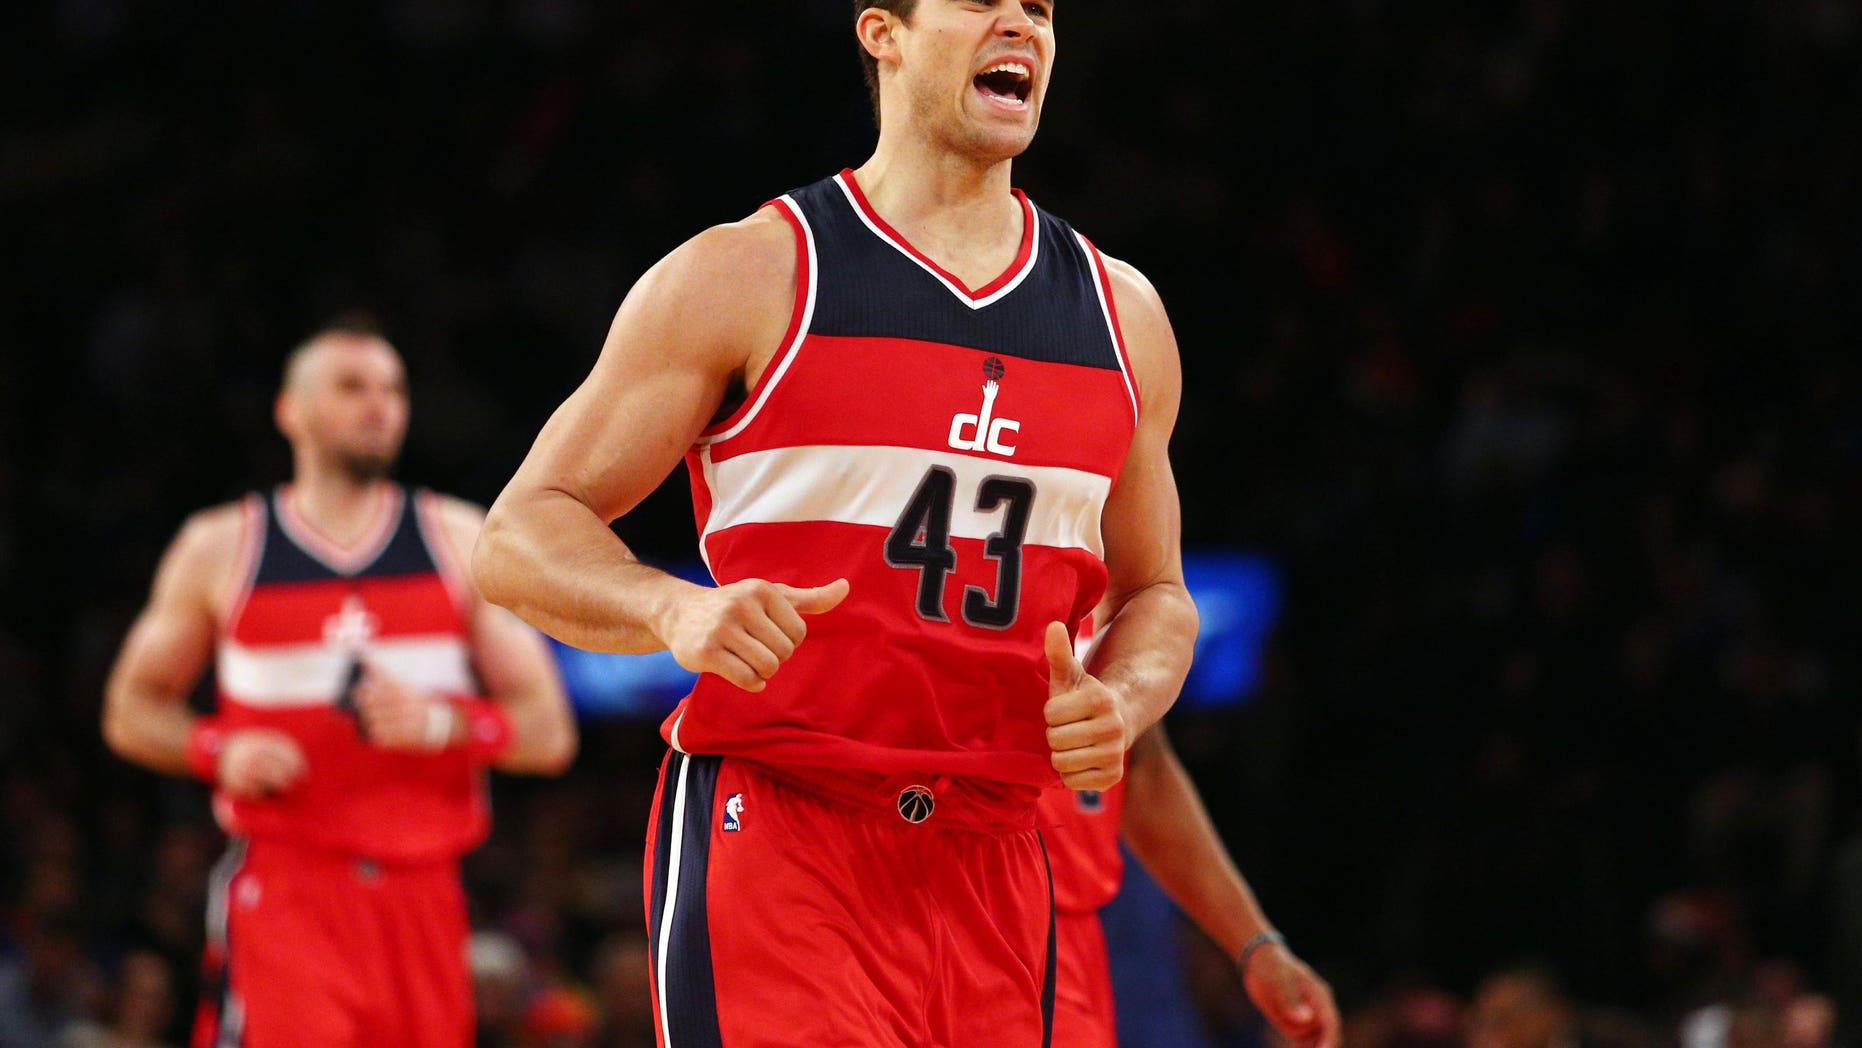 Dec 25, 2014. Washington Wizards power forward Kris Humphries (43) reacts against the New York Knicks during the third quarter at Madison Square Garden.